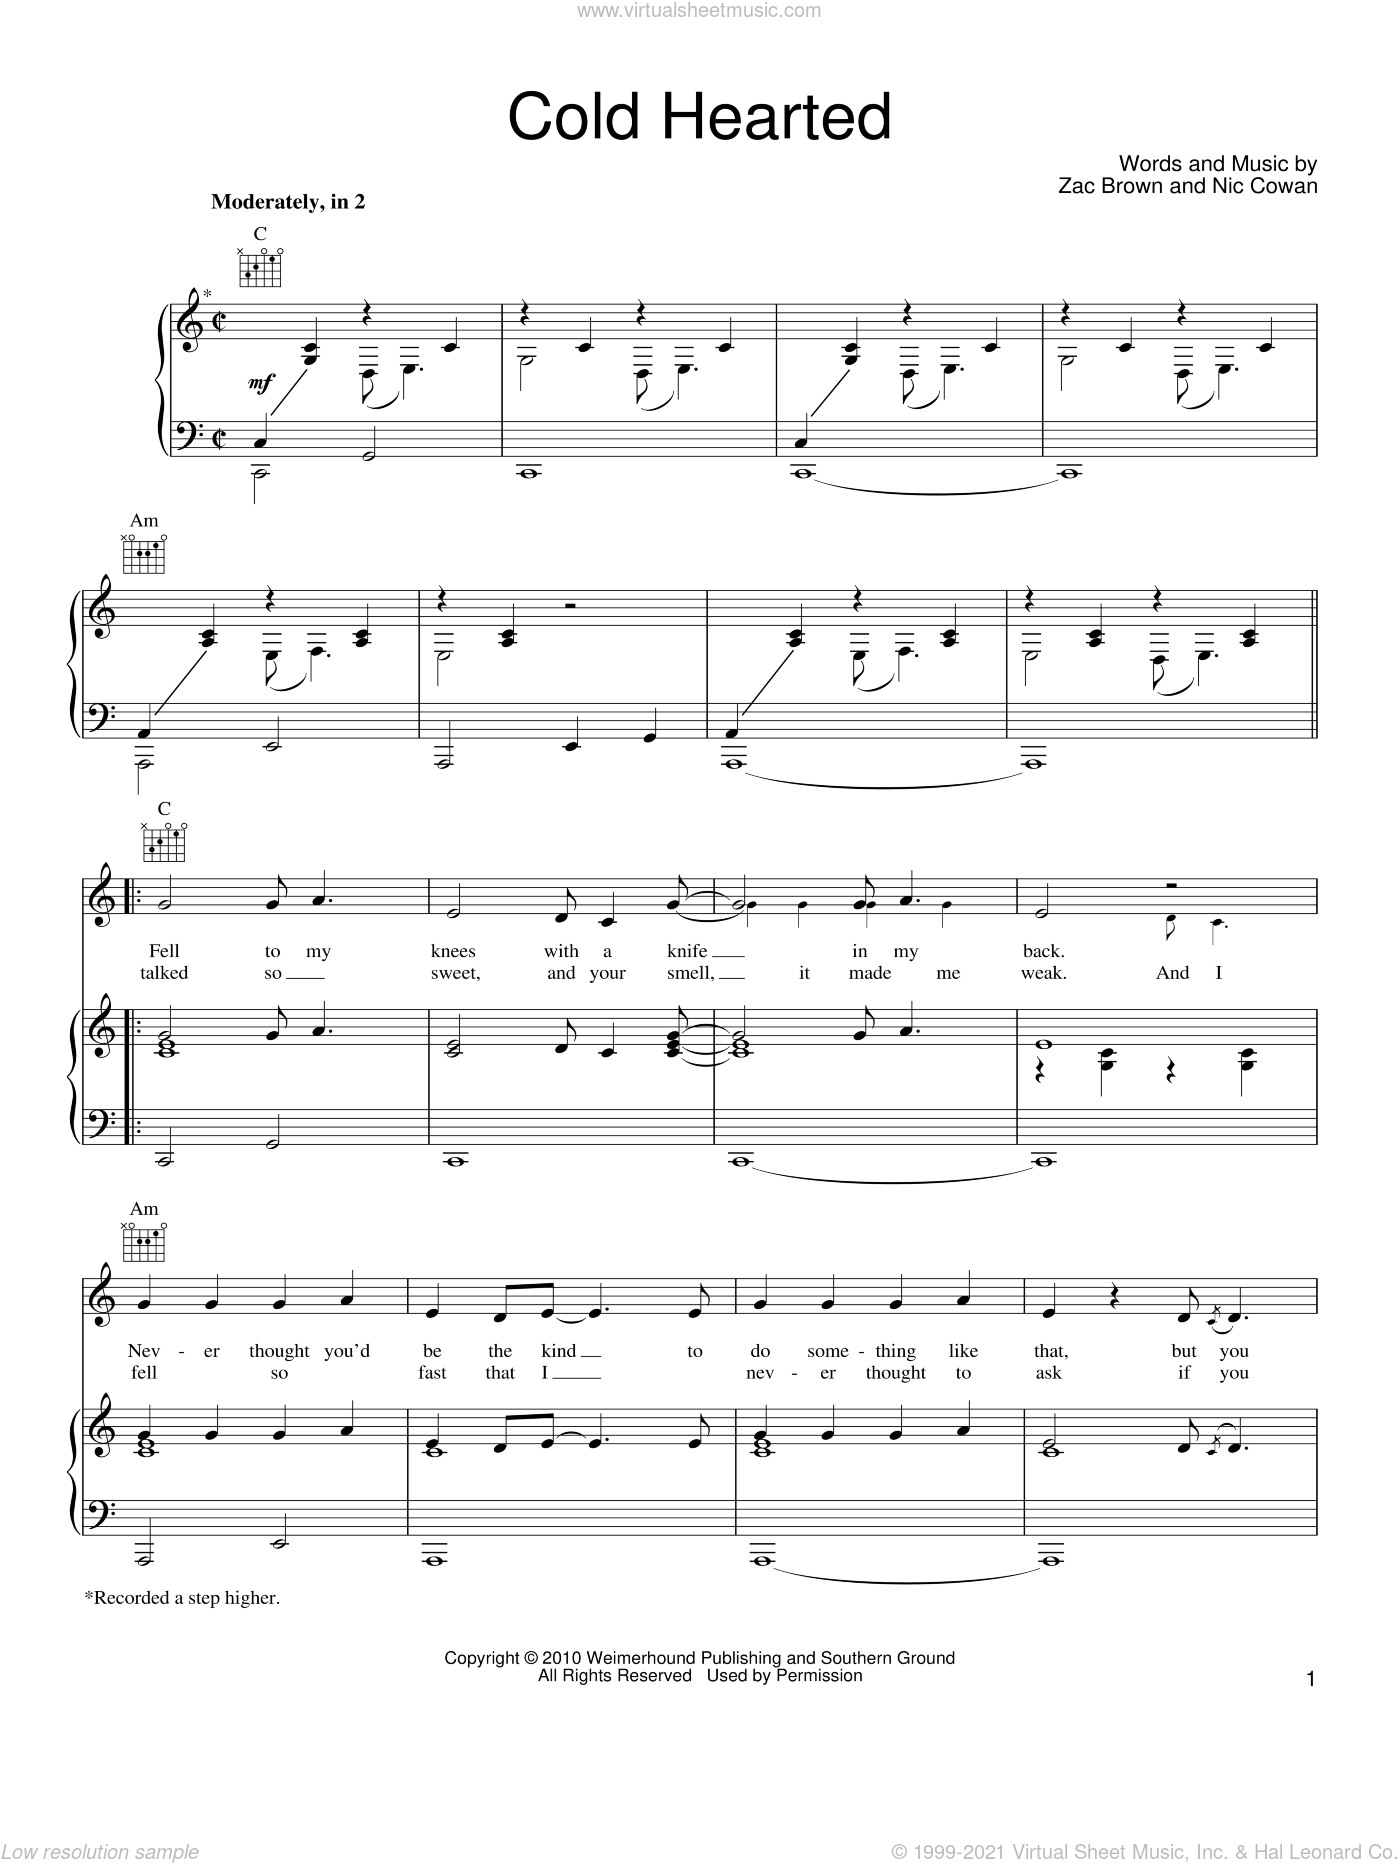 Cold Hearted sheet music for voice, piano or guitar by Zac Brown Band, Nic Cowan and Zac Brown, intermediate skill level